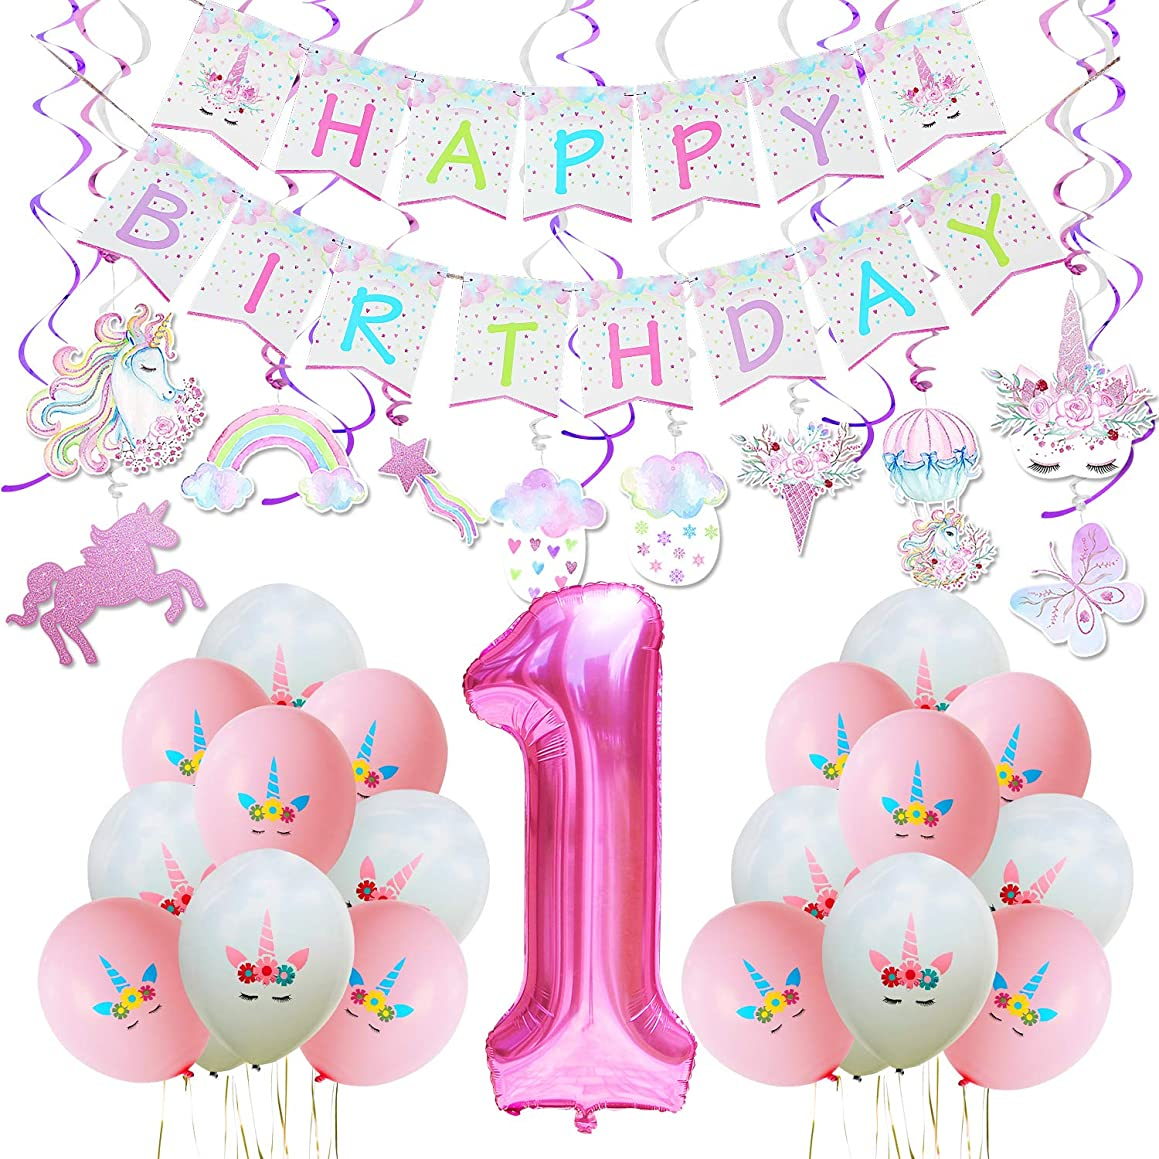 """WERNNSAI Unicorn Party Decoration Kit - Magical Unicorn Themed Party Supplies for 1st Birthday Baby Girl Including Pastel Banner, Hanging Swirl, Latex Balloon, Giant Number """"1"""" Foil Balloon"""